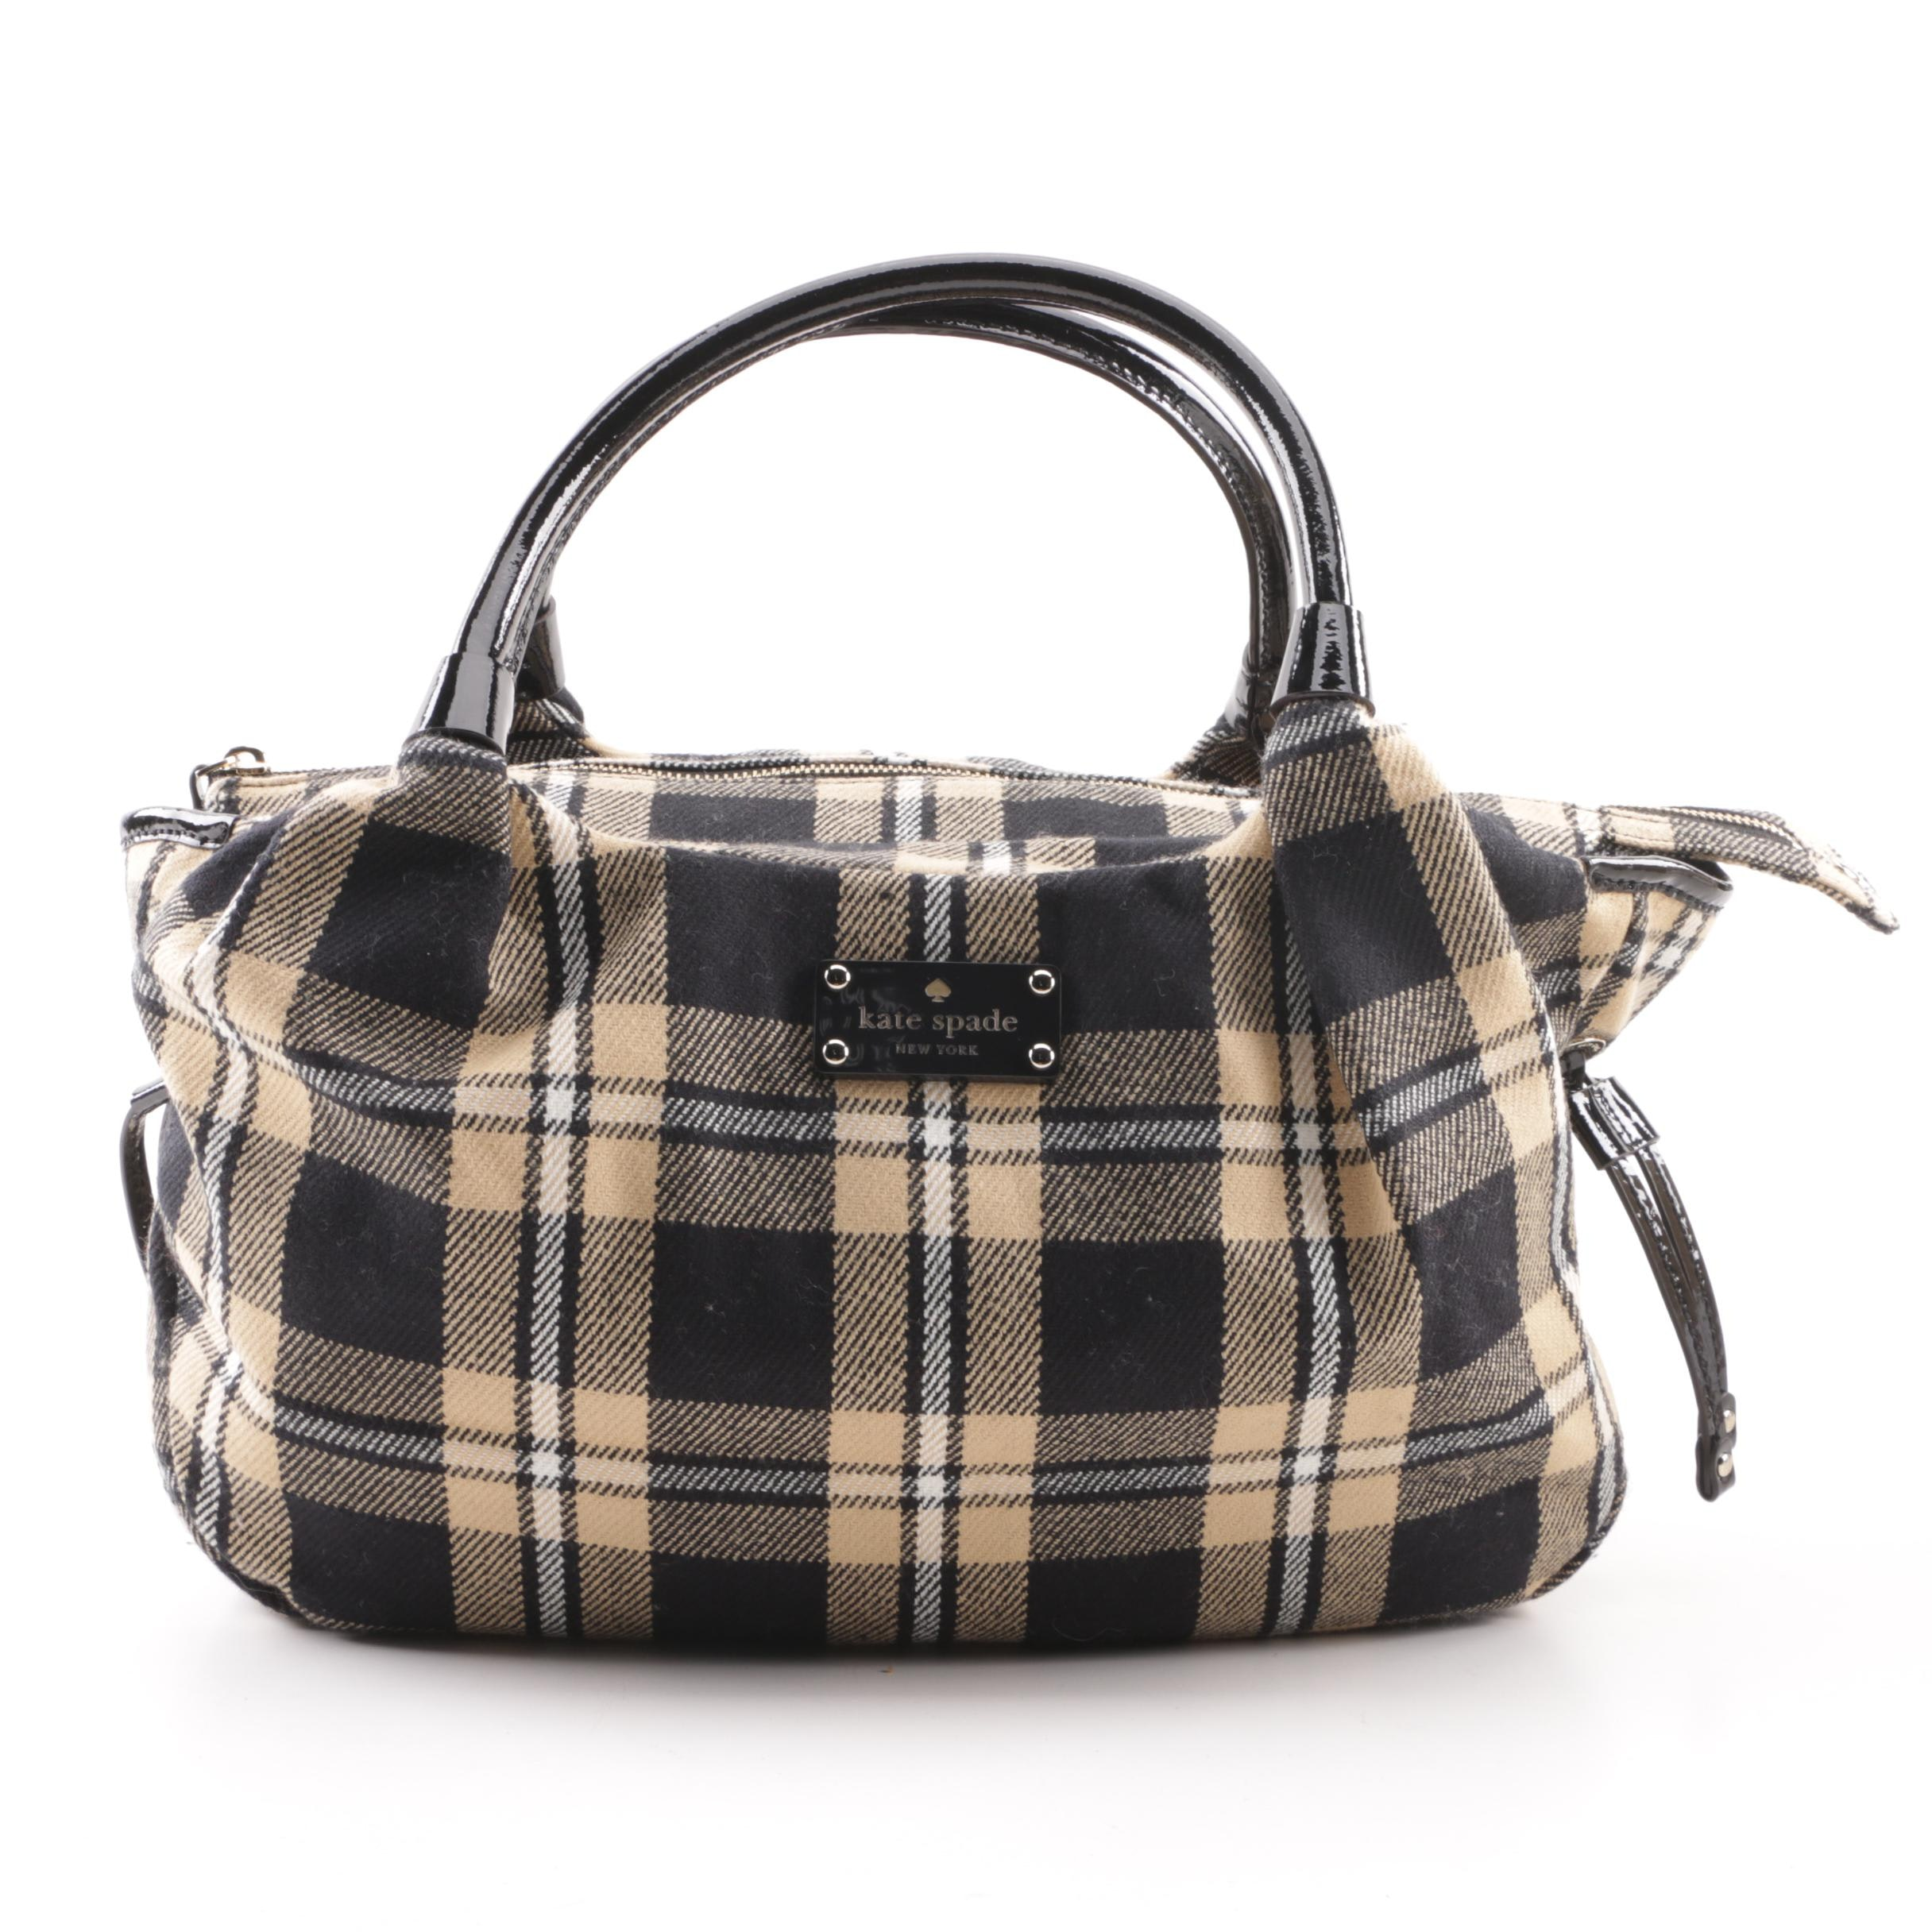 Kate Spade New York Plaid Fabric and Patent Leather Handbag Tote